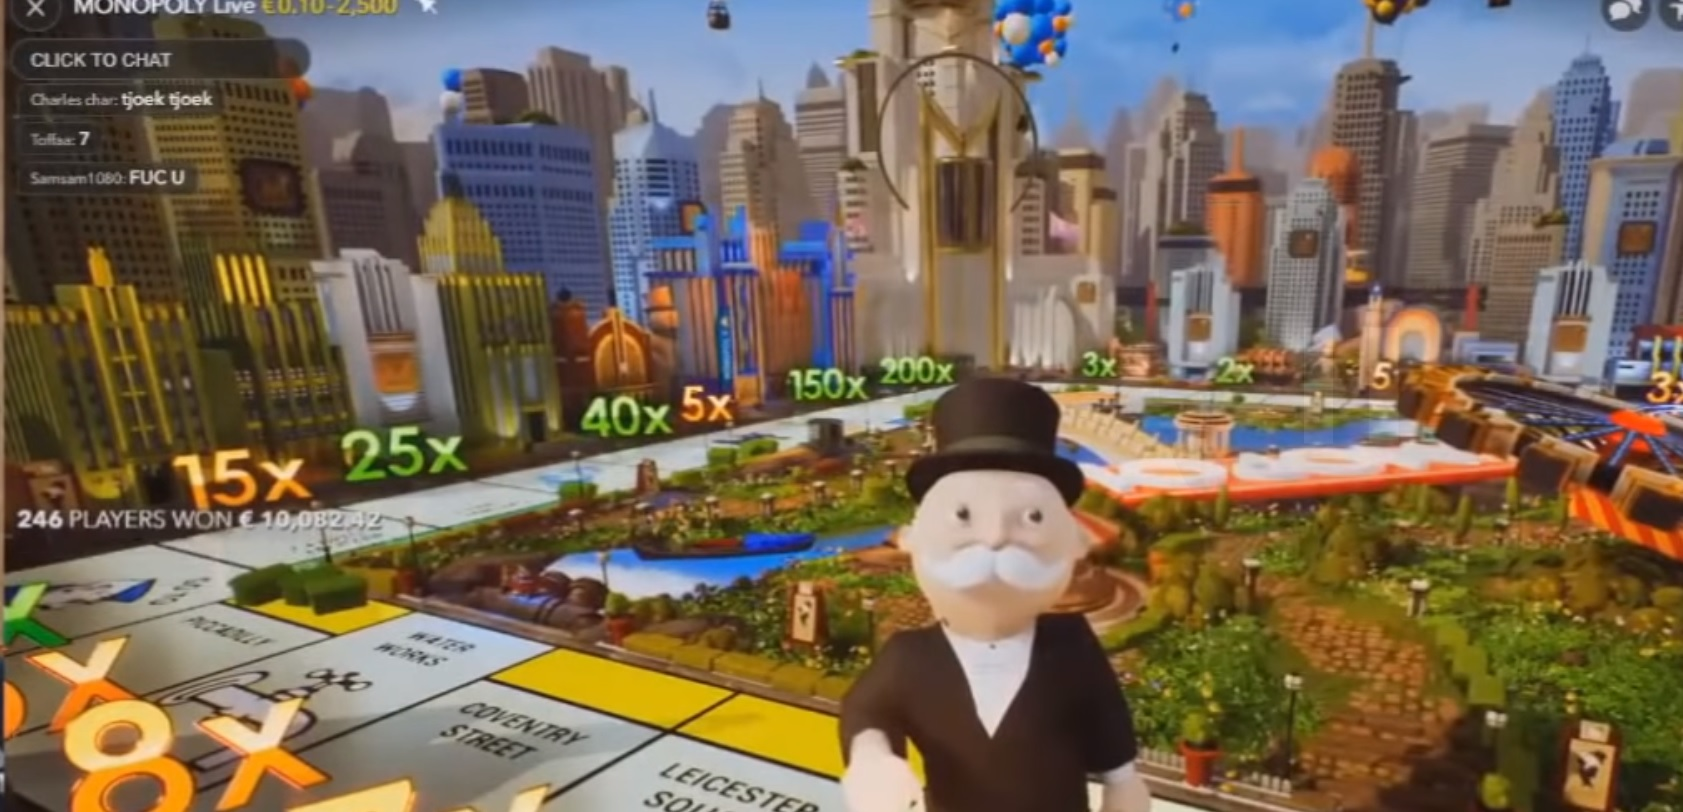 Live casino brings Monopoly